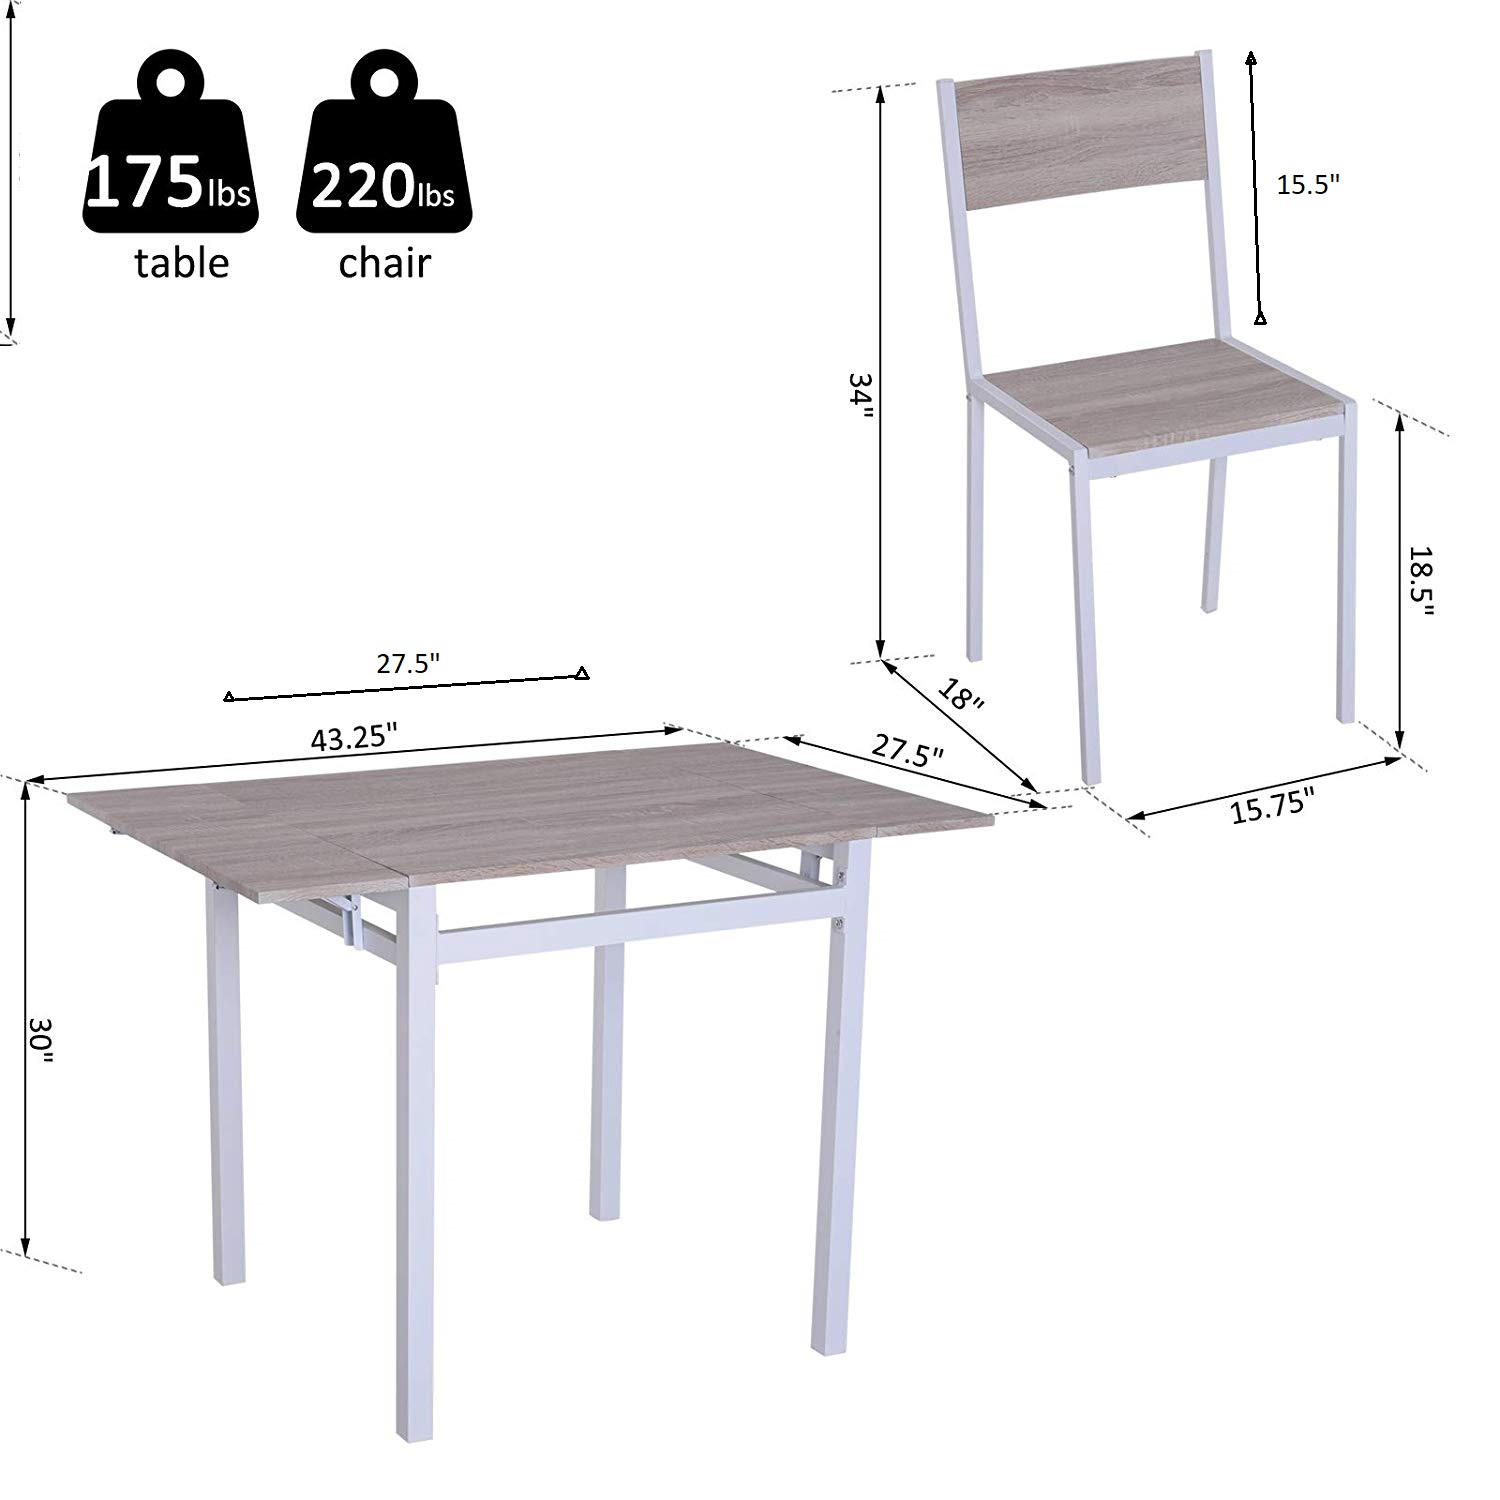 5-PC-Extending-Drop-Leaf-Counter-Height-Dining-Set-Table-amp-4-Chairs-Kitchen thumbnail 3